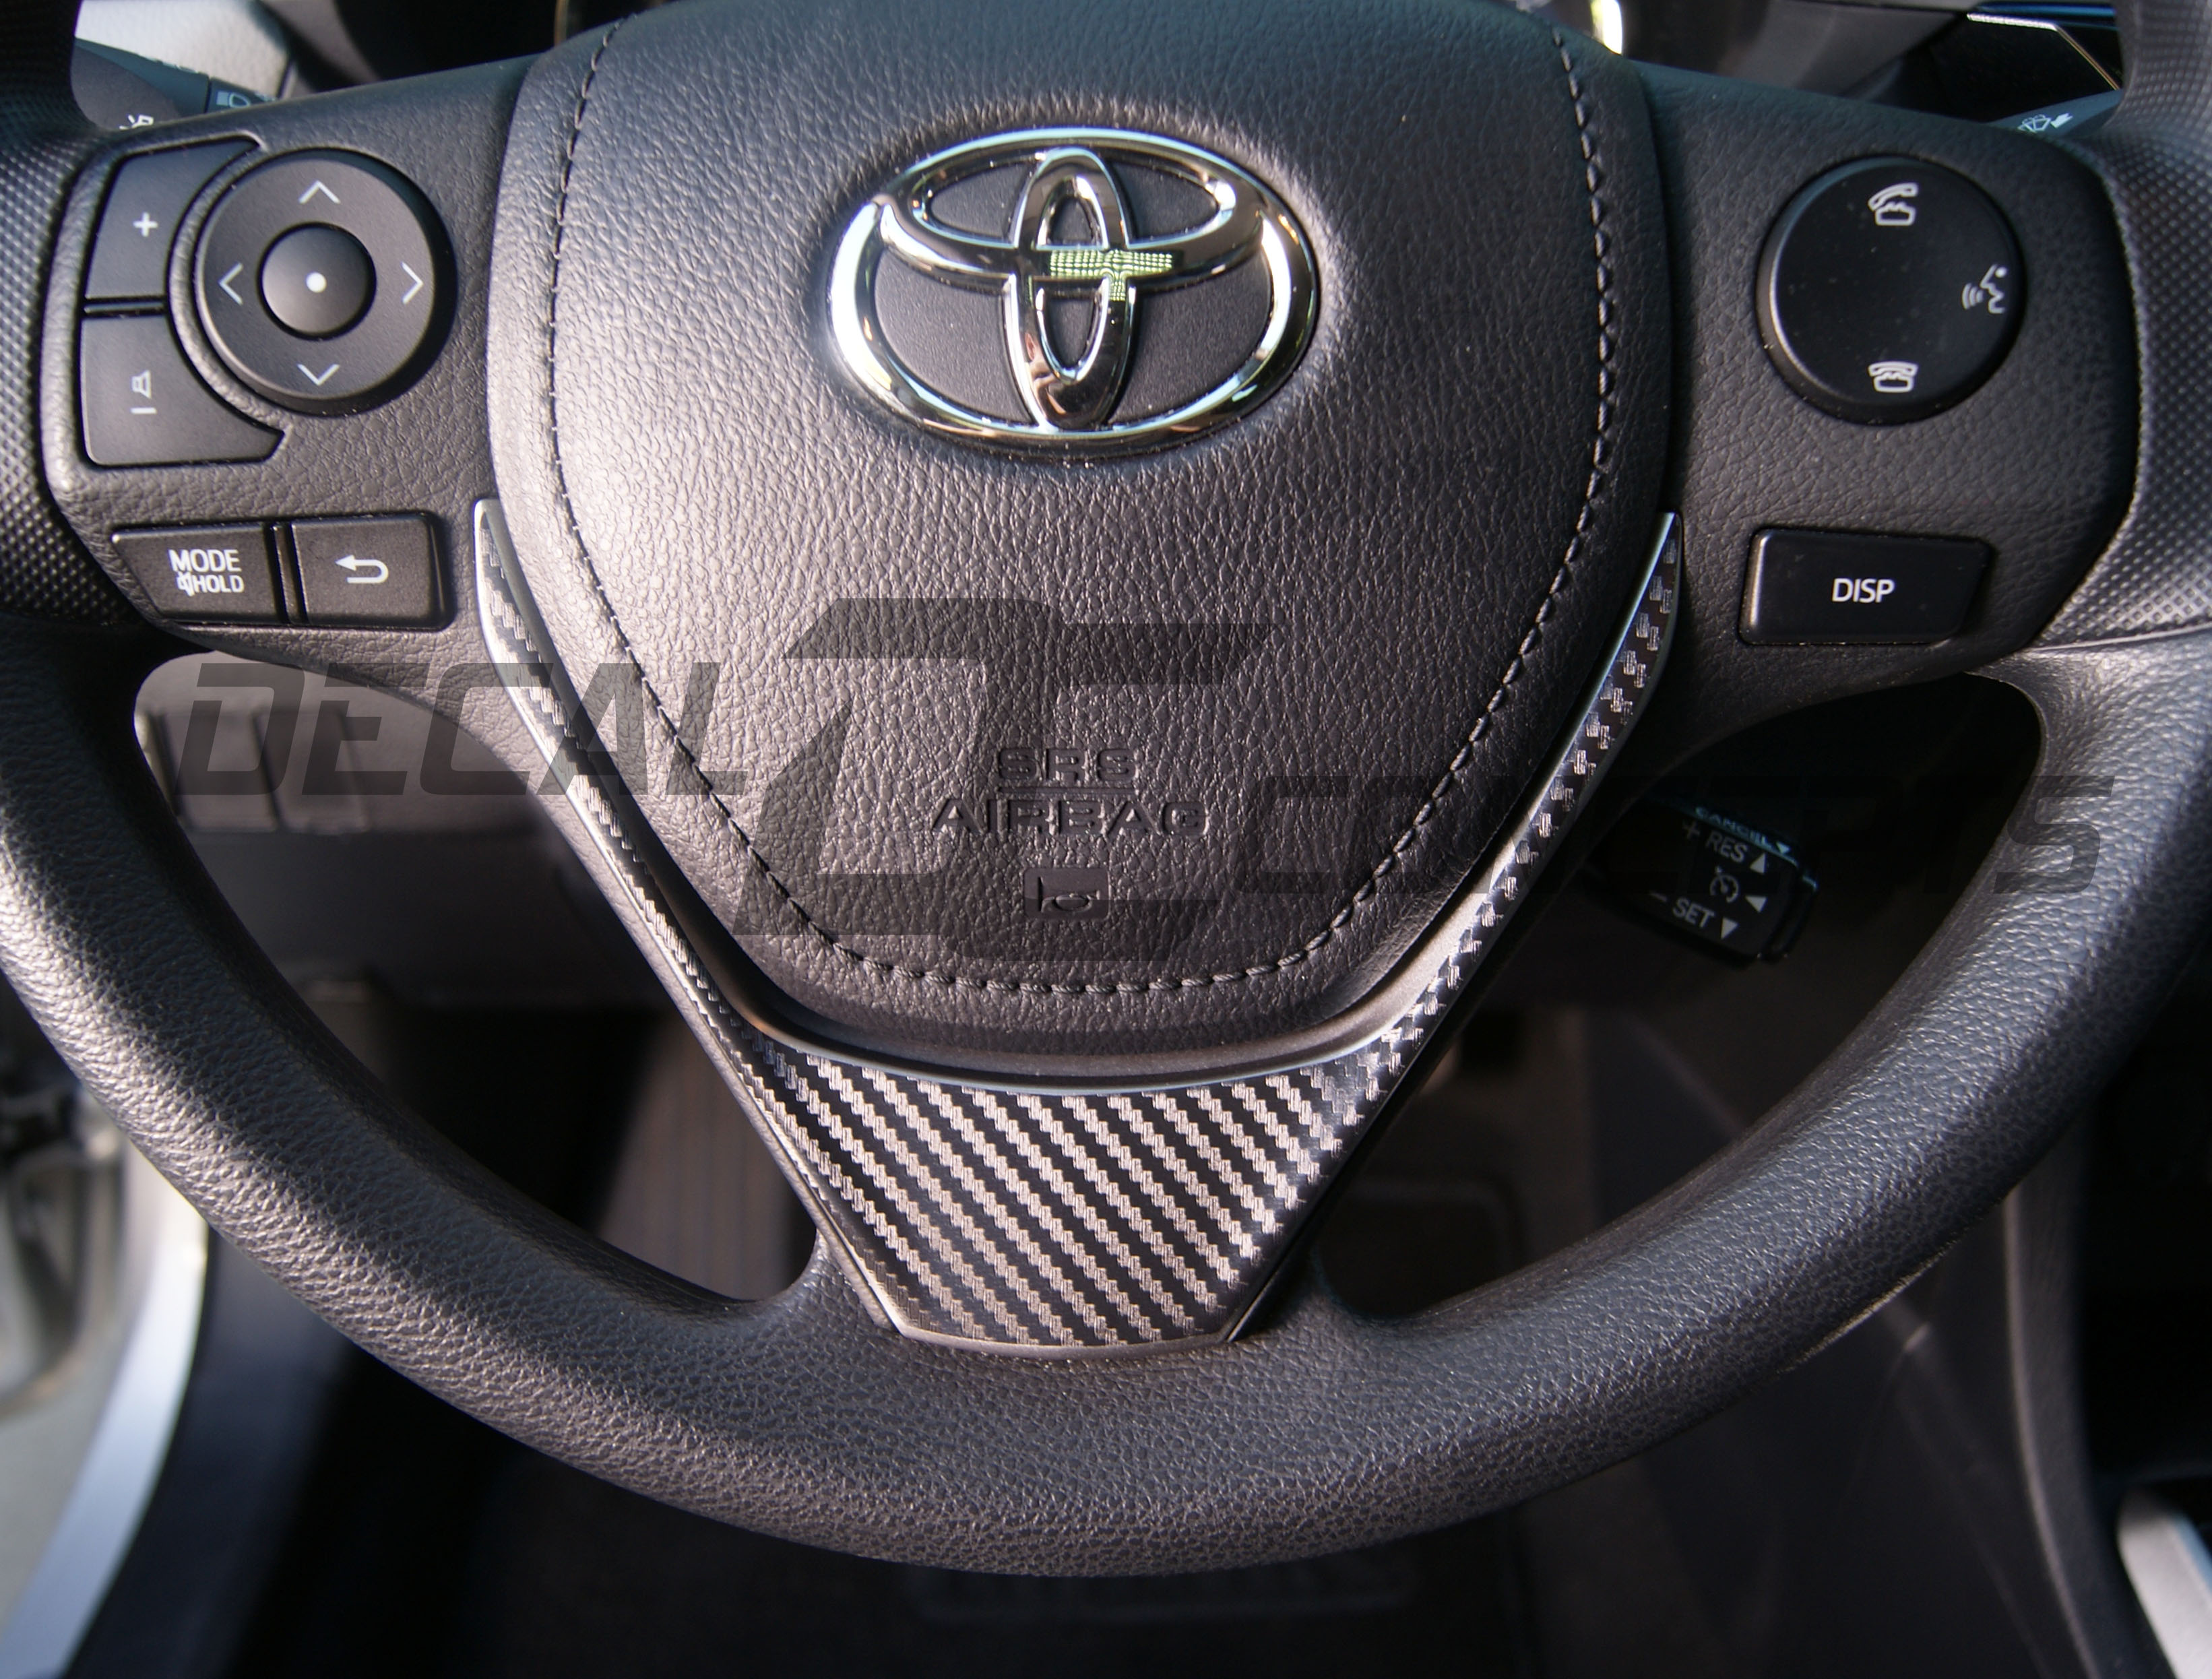 toyota corolla carbon fiber lower steering wheel accent decal kitadd to wishlist loading